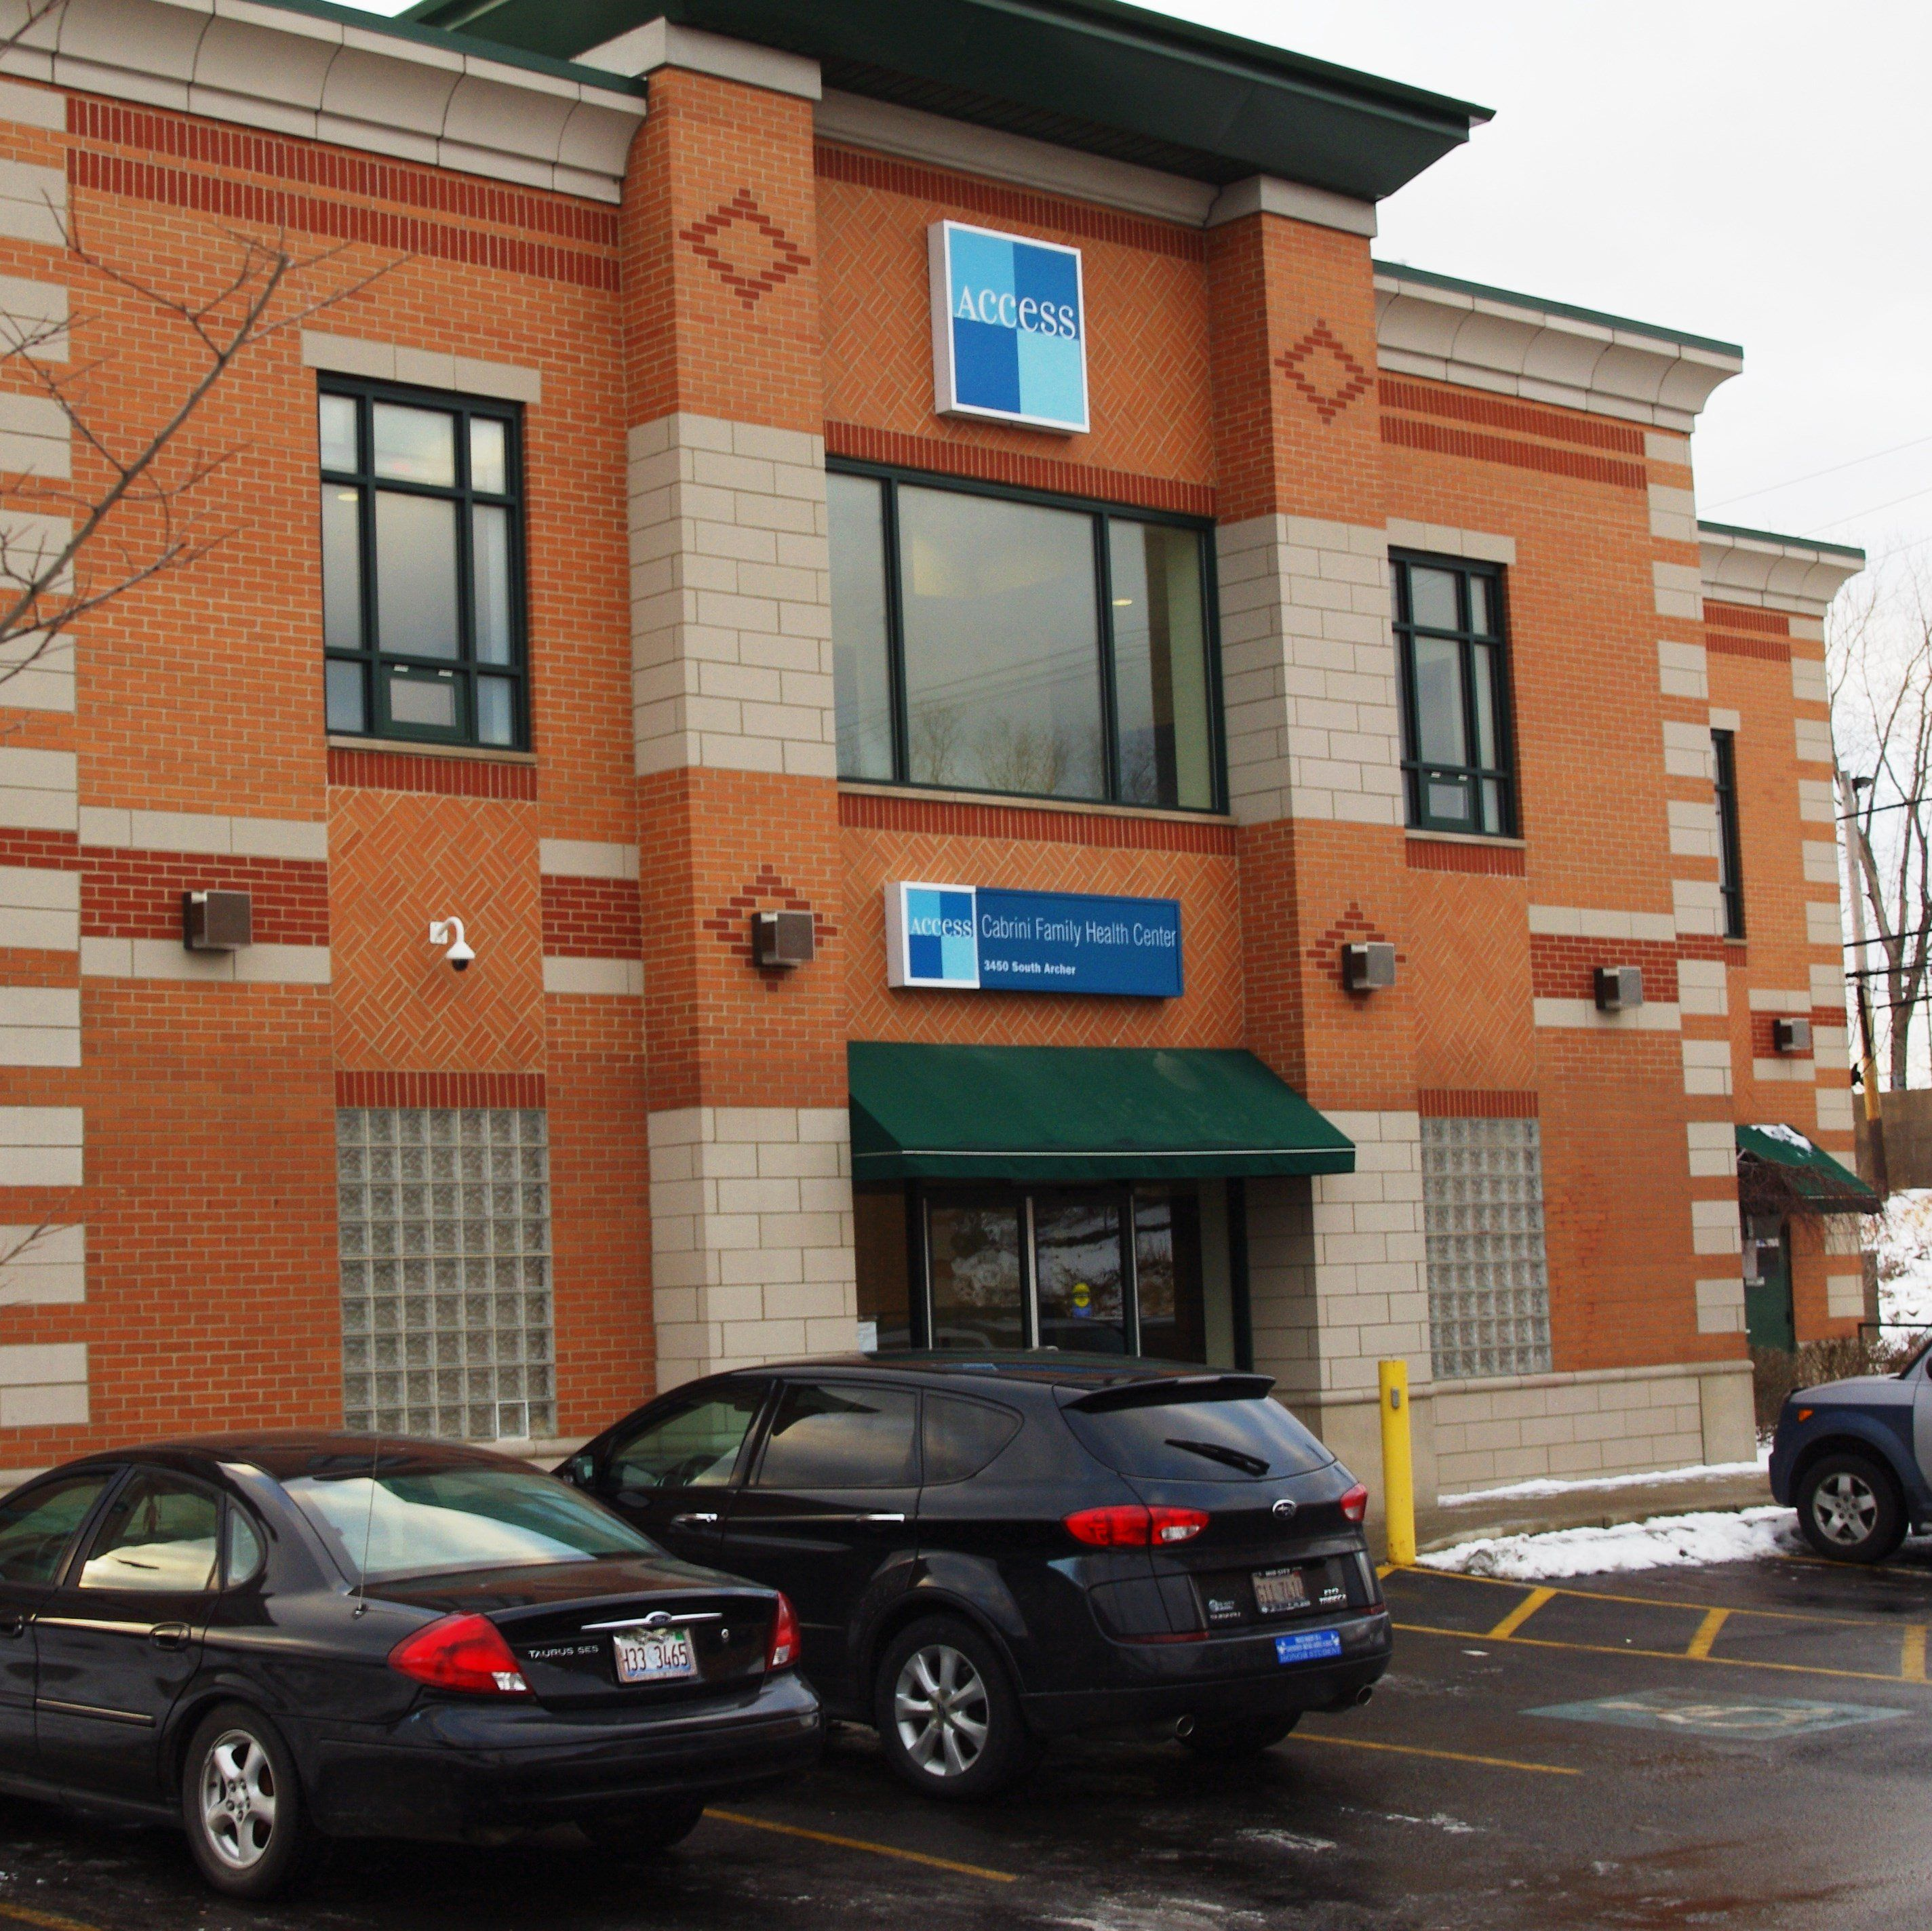 Access Cabrini Family Health Center